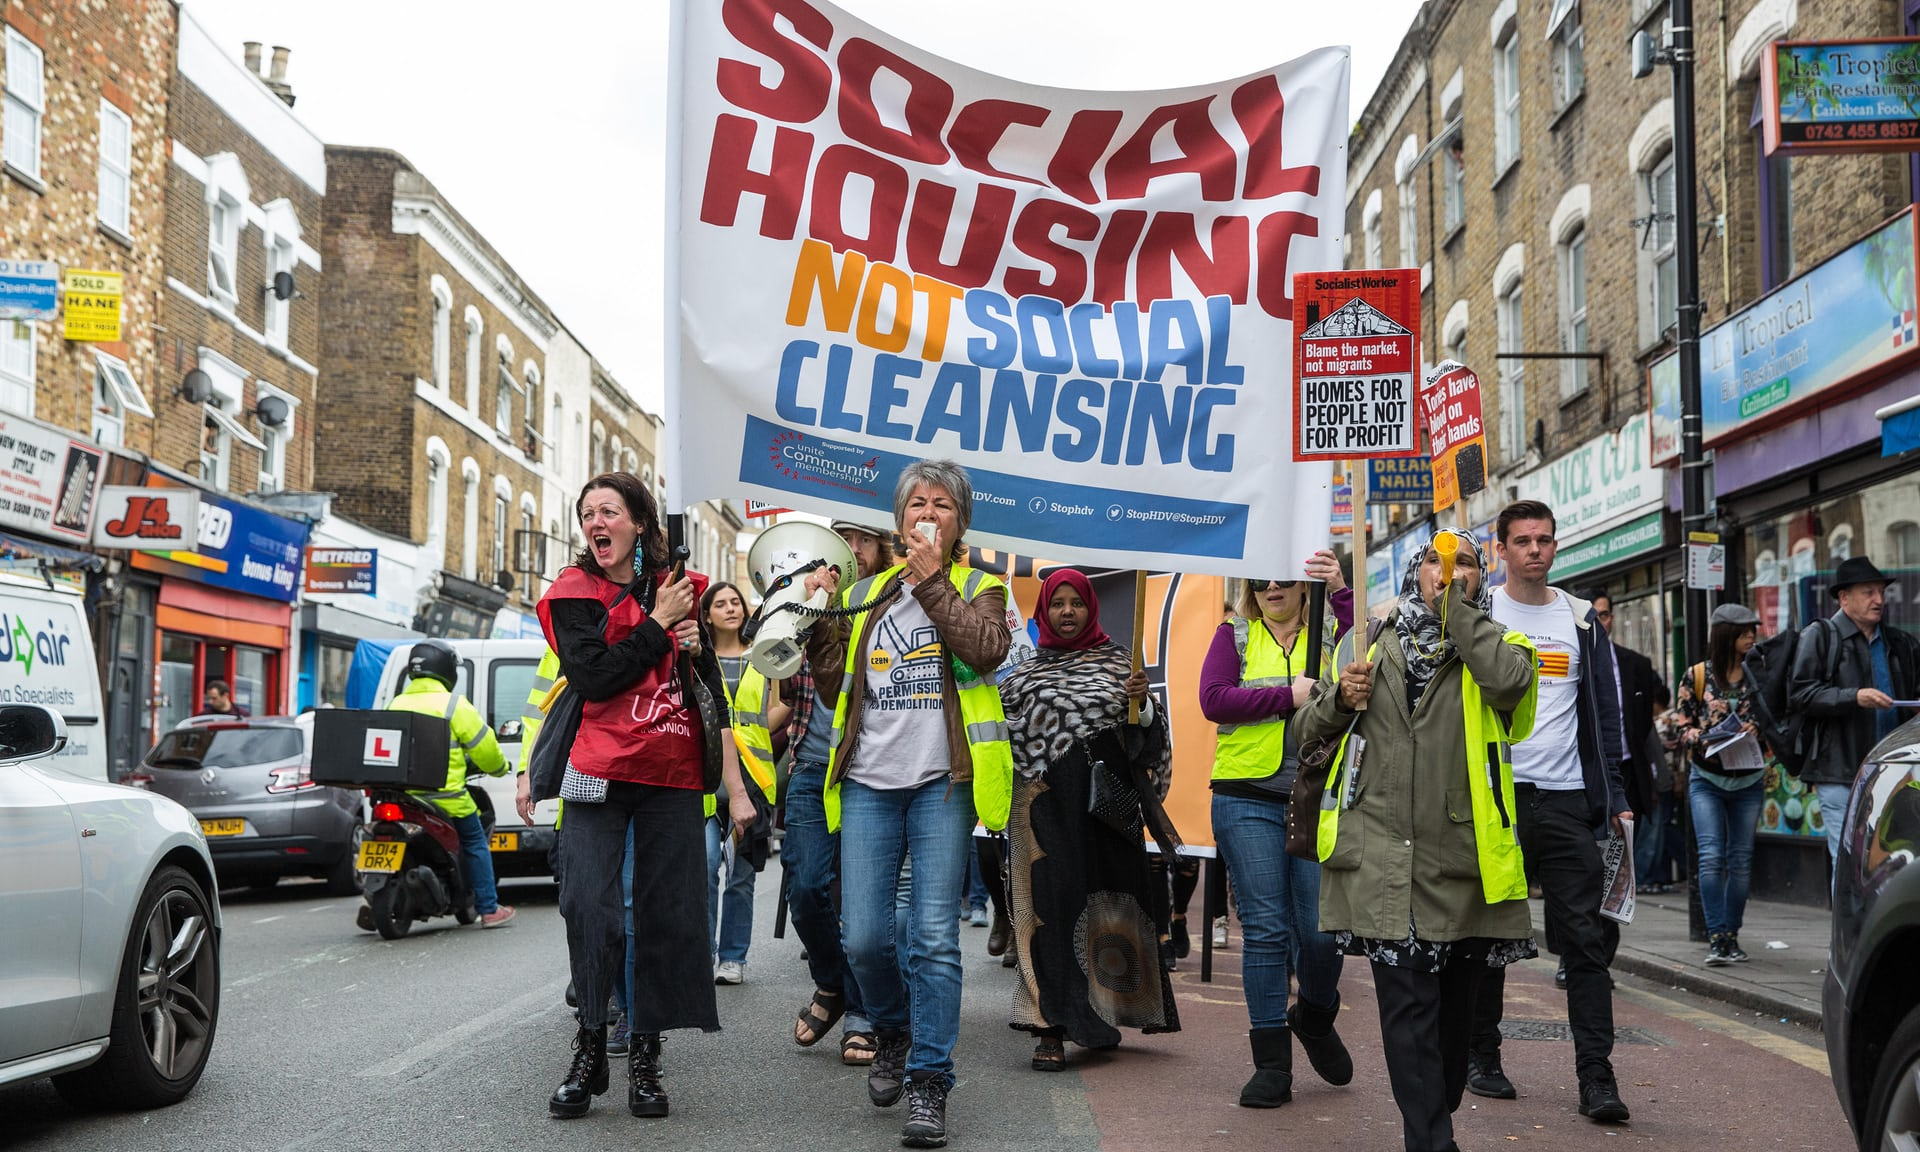 Protestors of the HDV march from Seven Sisters to Finsbury Park in Haringey.